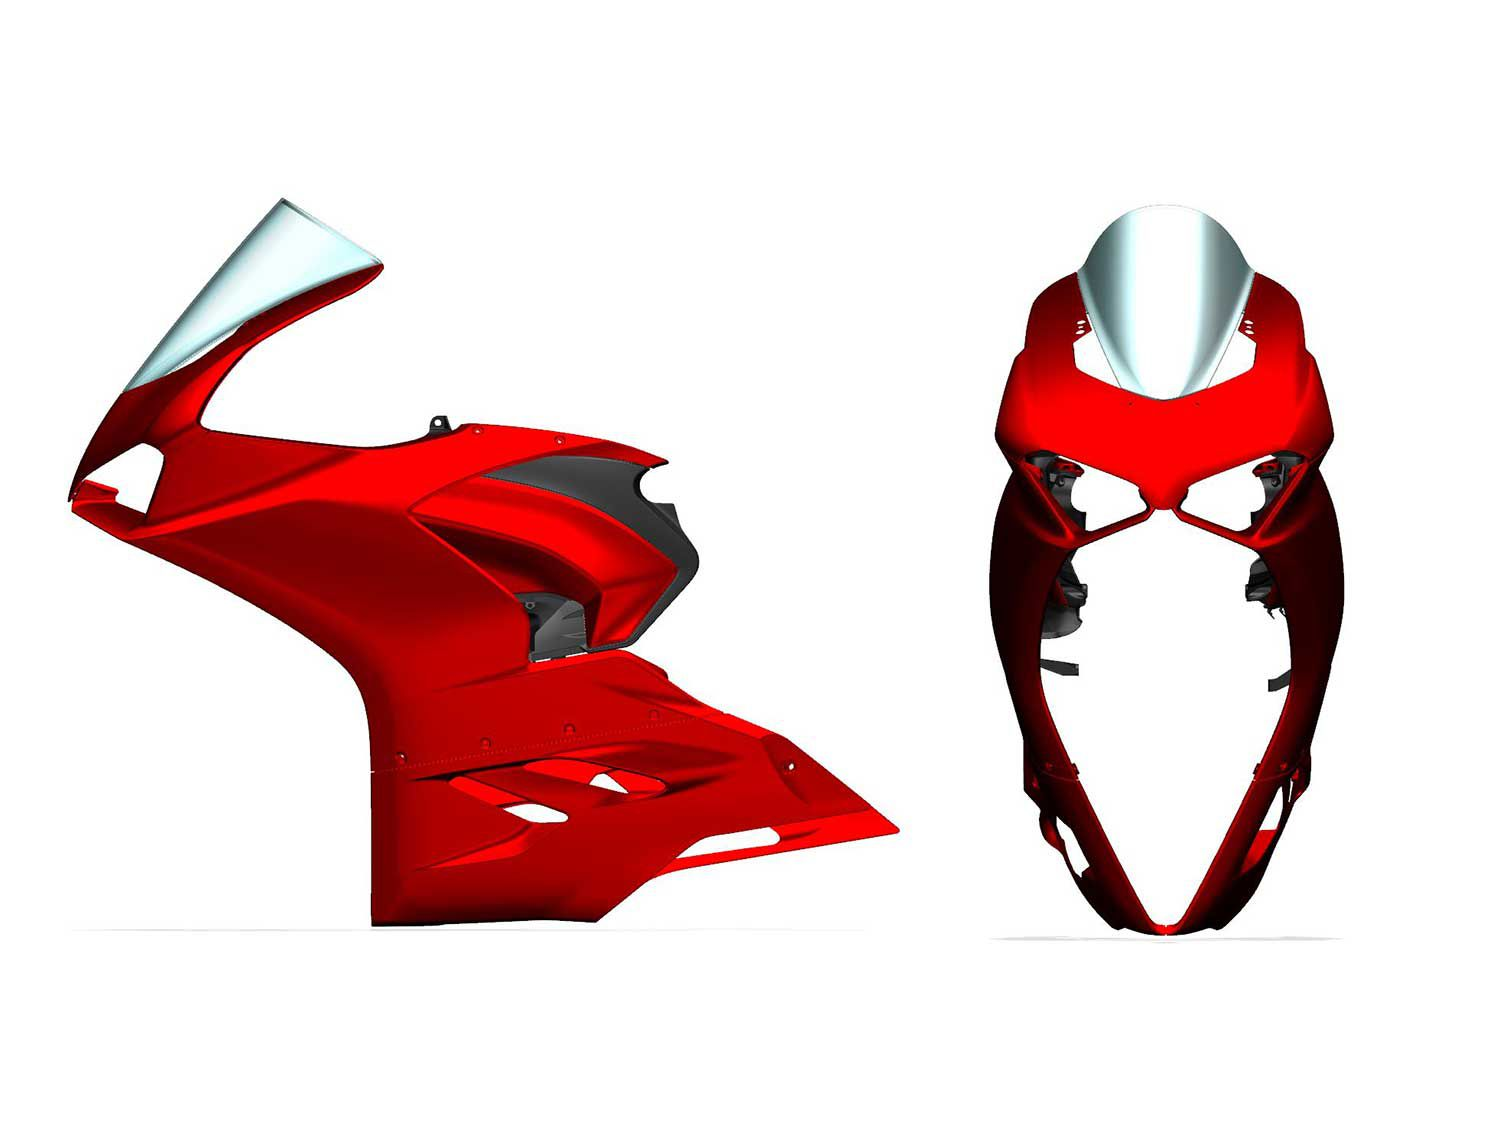 A computer-generated drawing of the Panigale V2's skin shows the two layers of bodywork around the frame, and the large inlets that house the LED headlights as well as acting as air inlets.